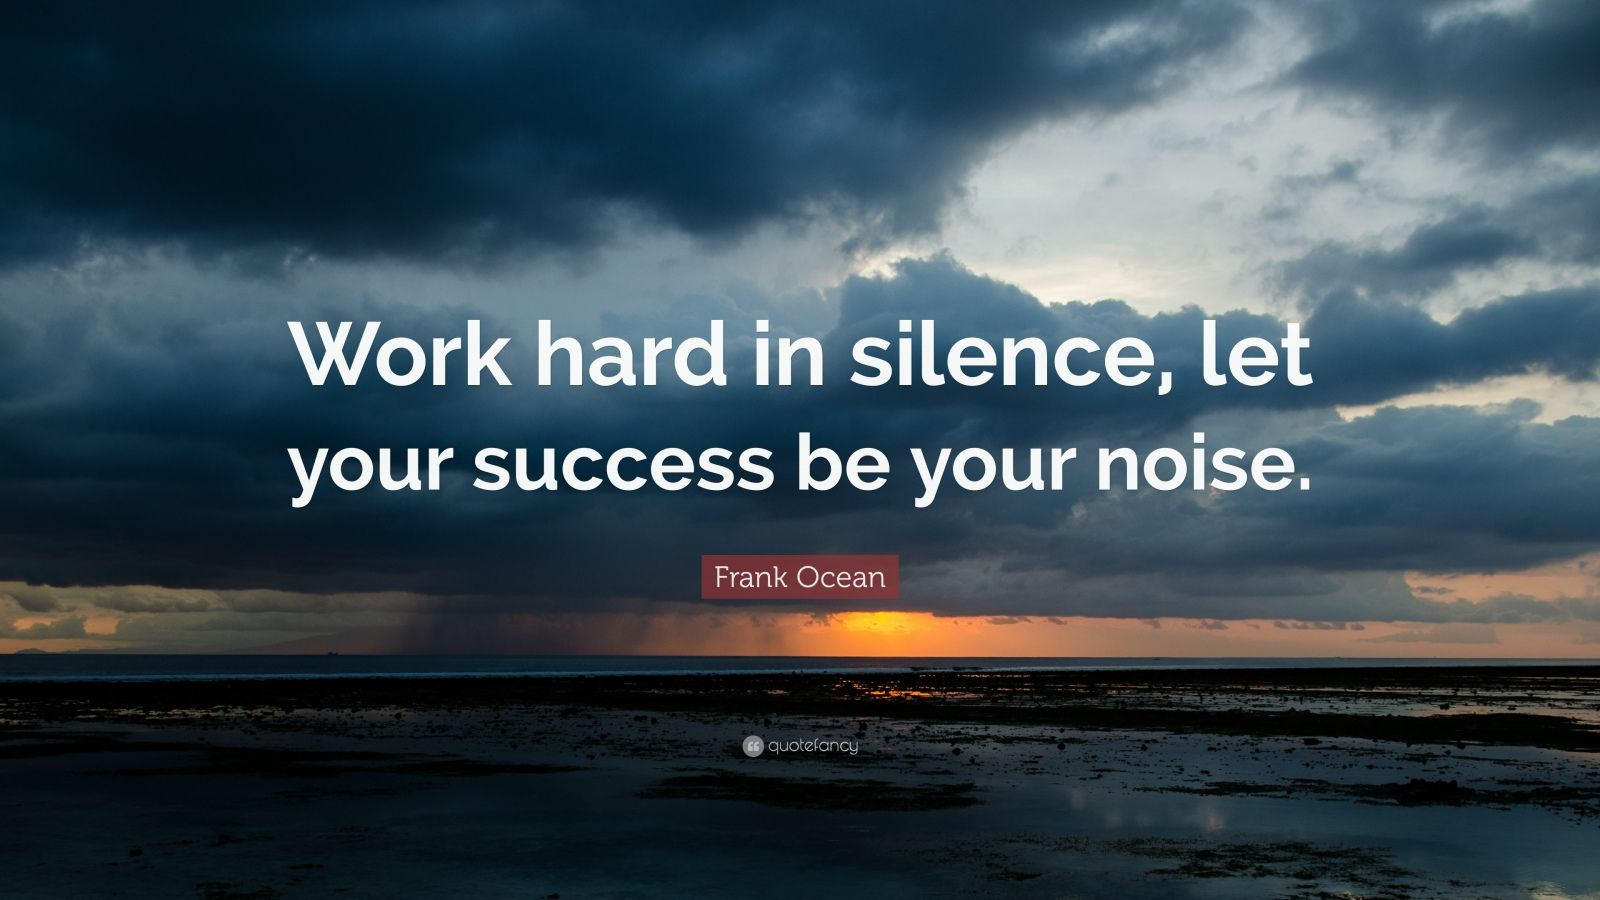 frank ocean quote work hard in silence let your success be